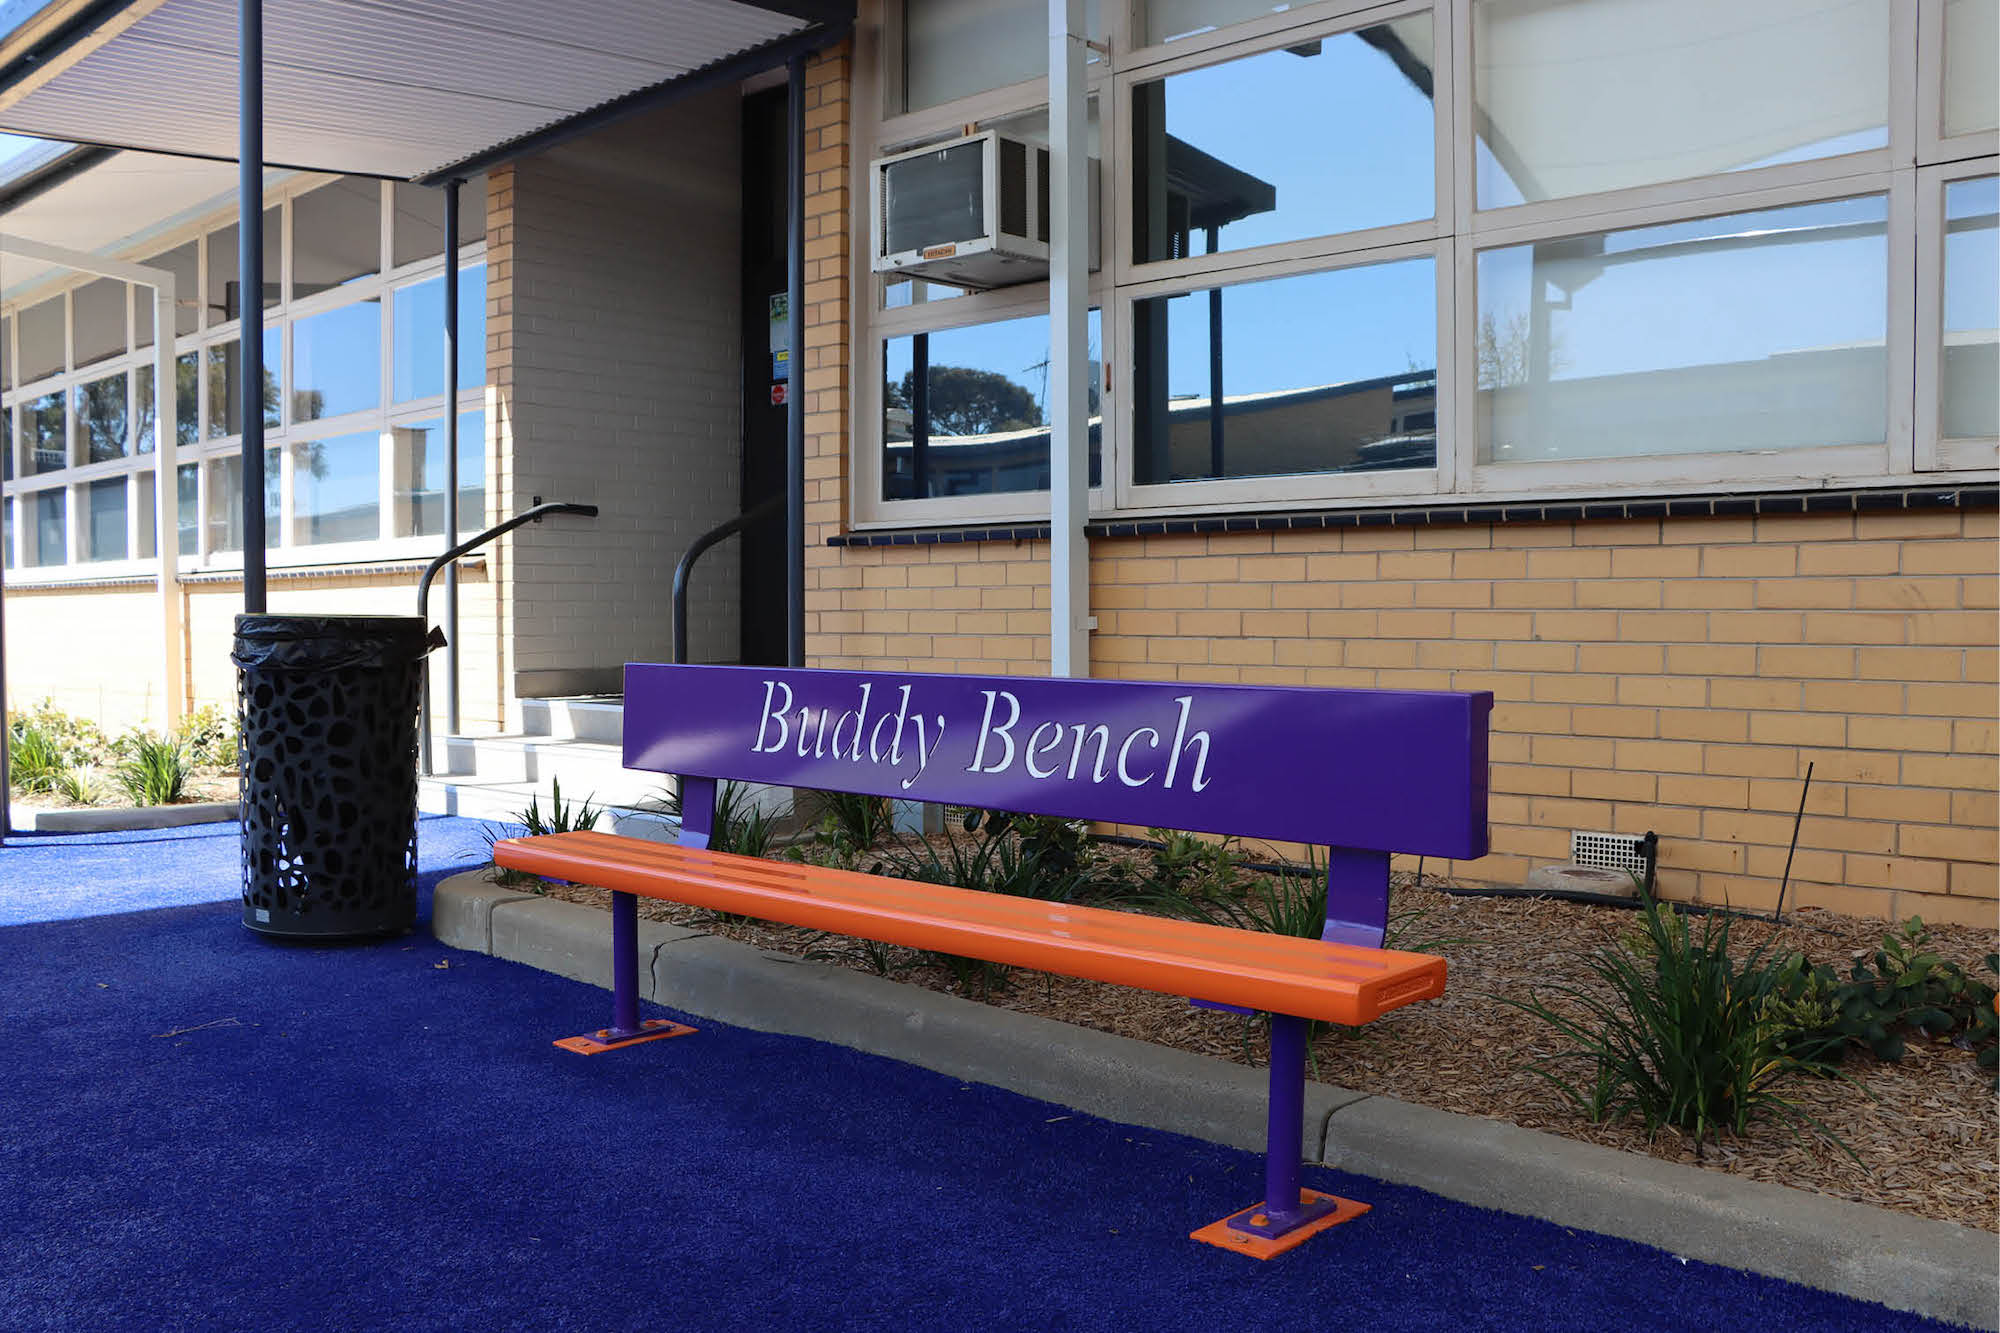 SeatsPlus Buddy Bench Purple